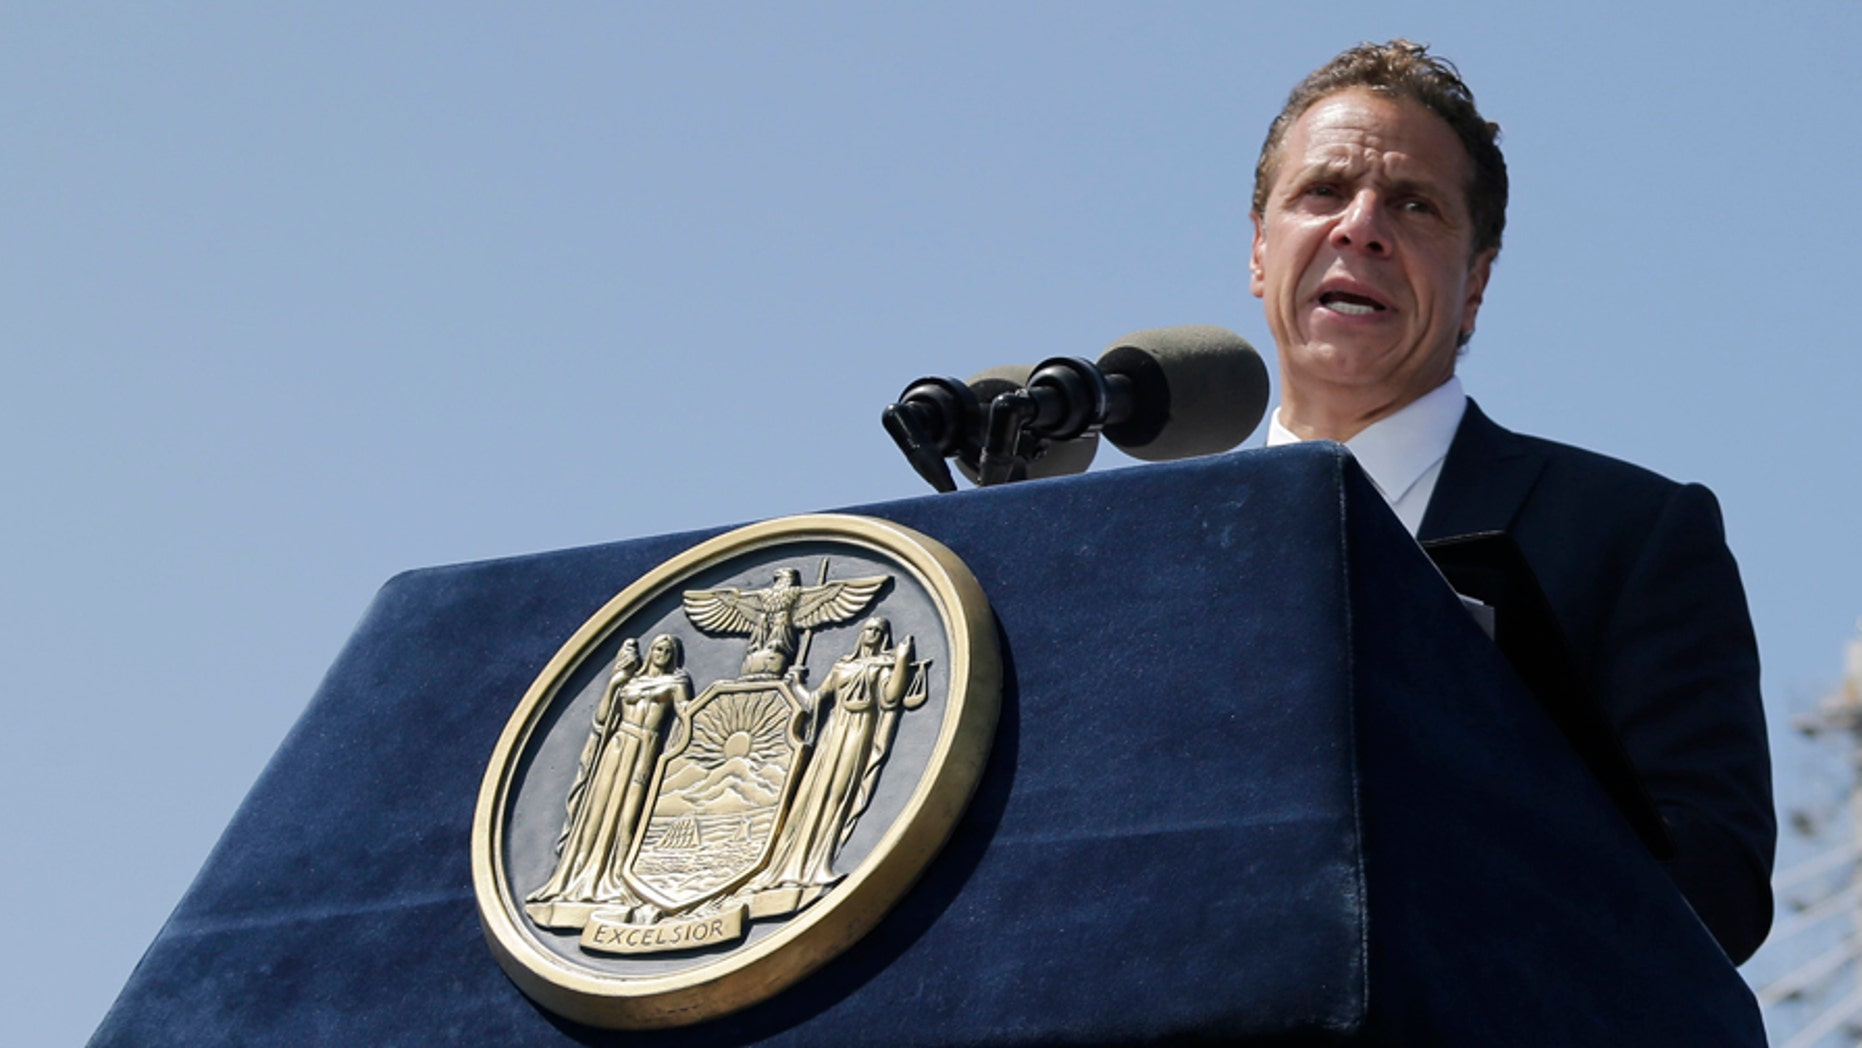 FILE: Aug. 27, 2017: New York Gov. Andrew Cuomo speaks during a ribbon cutting ceremony for the Tappan Zee Bridge replacement, near Tarrytown, N.Y. (AP)